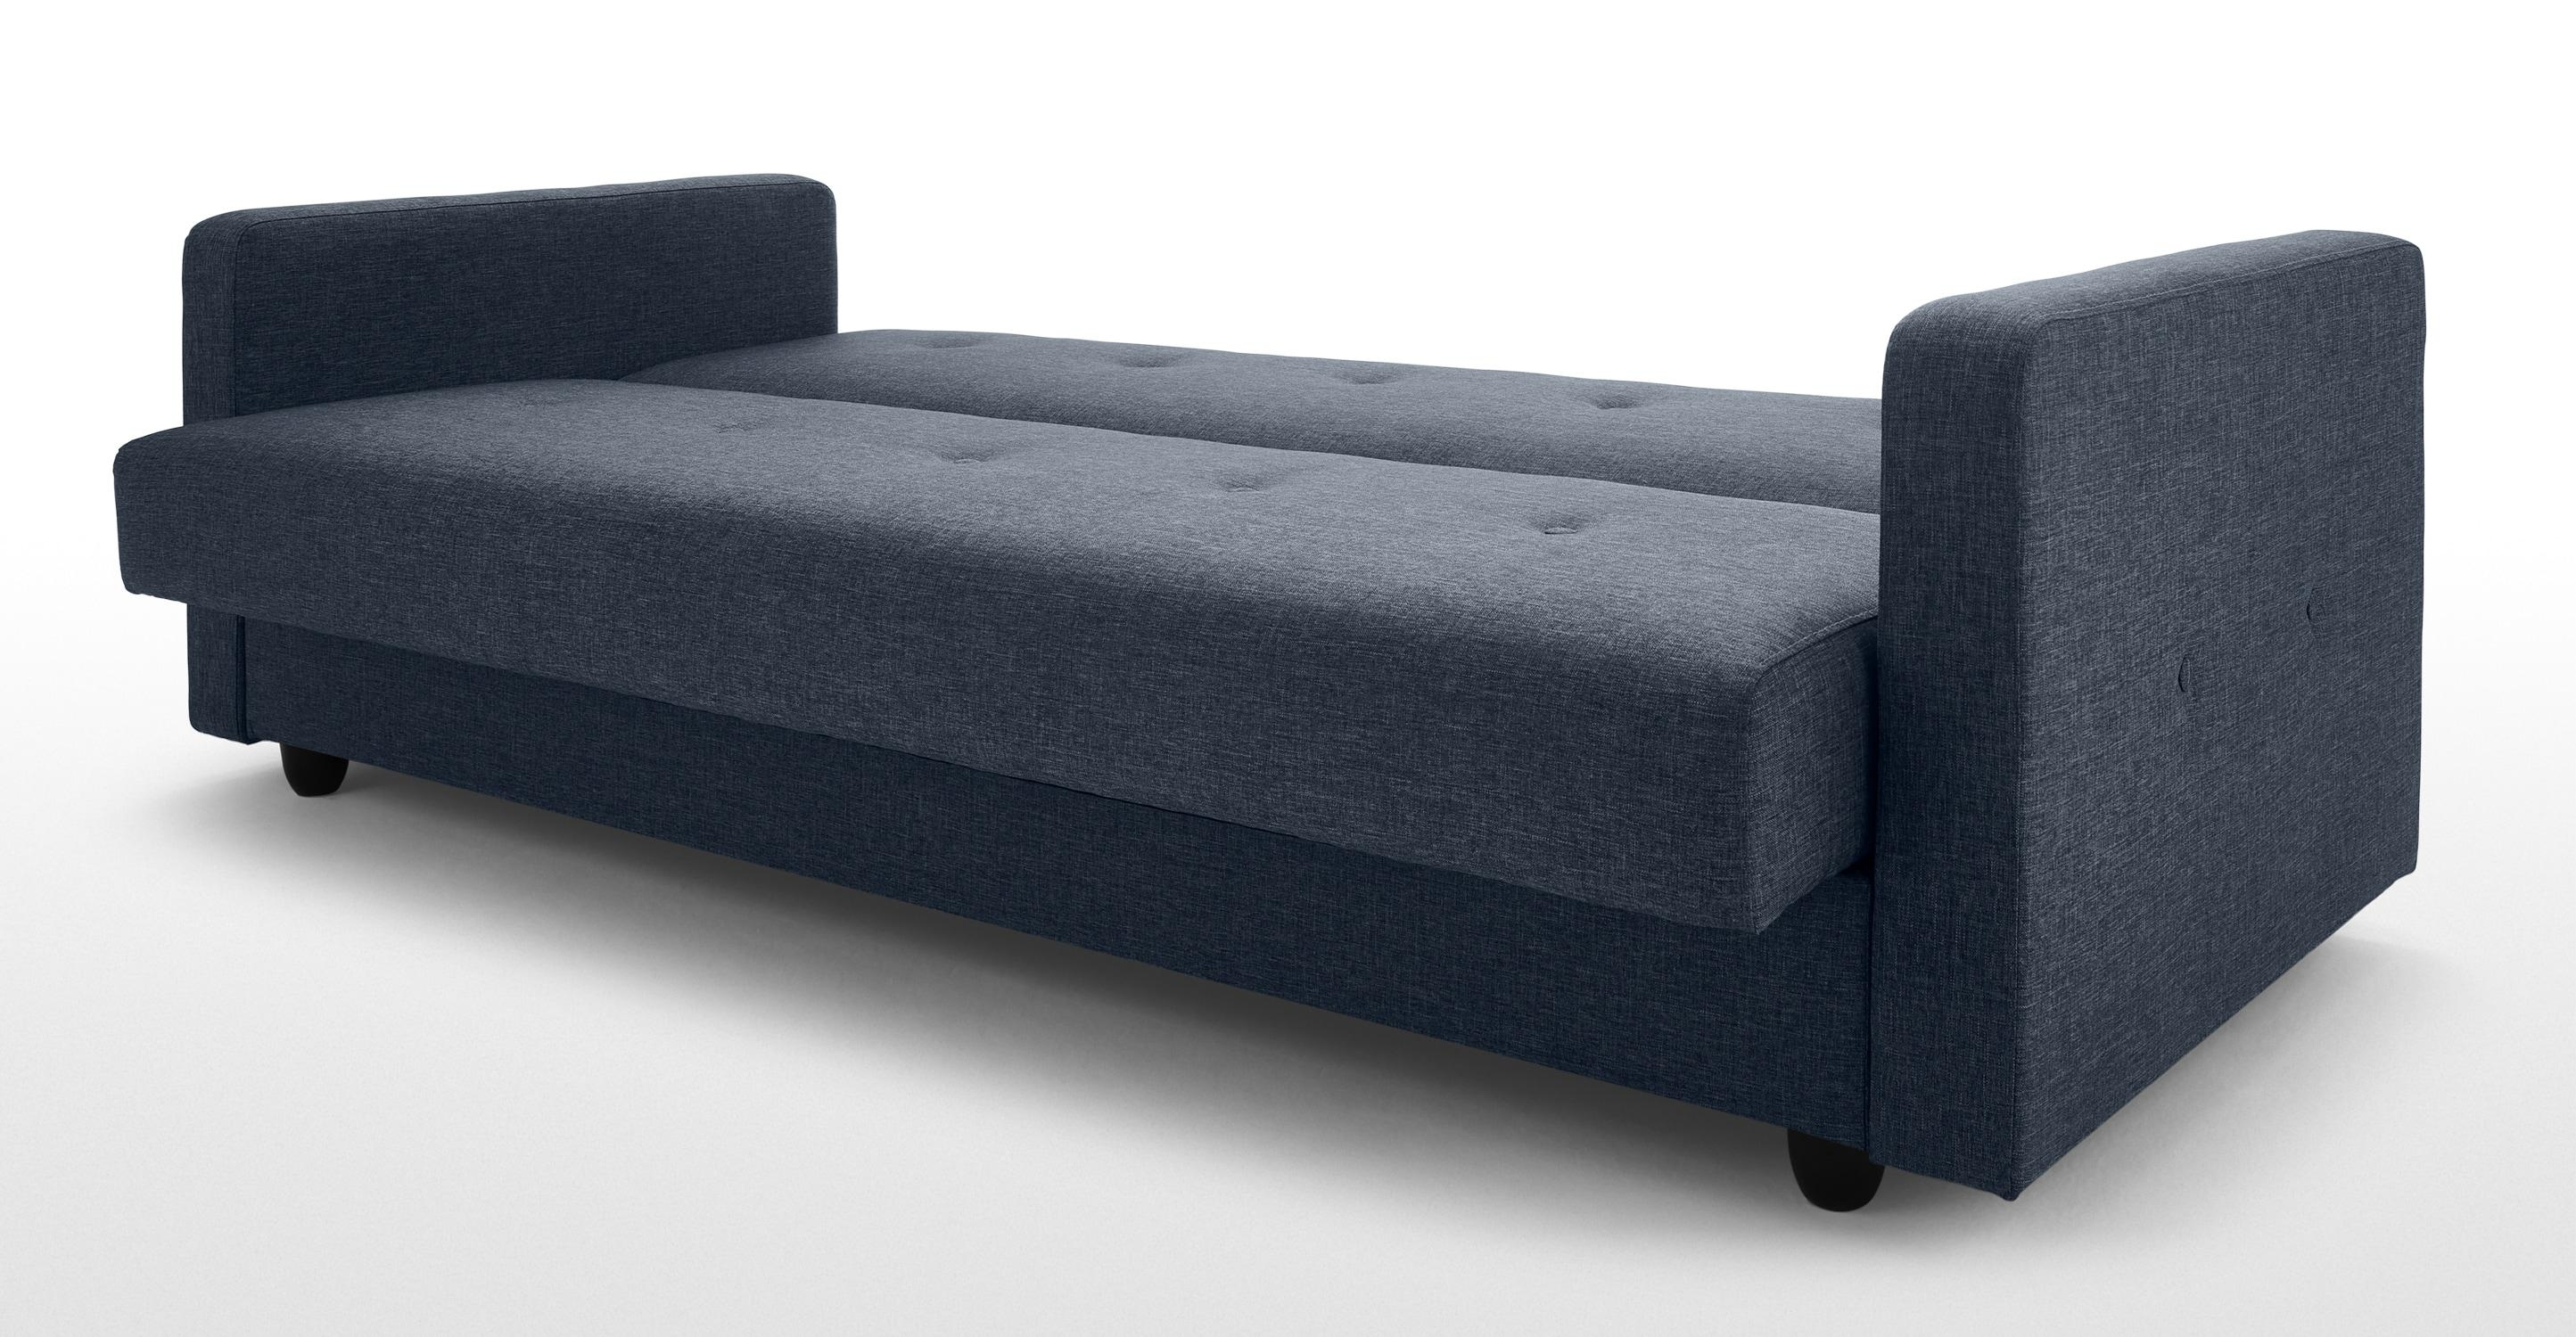 Chou Sofa Bed With Storage, Quartz Blue | Made Throughout Storage Sofa Beds (View 2 of 20)